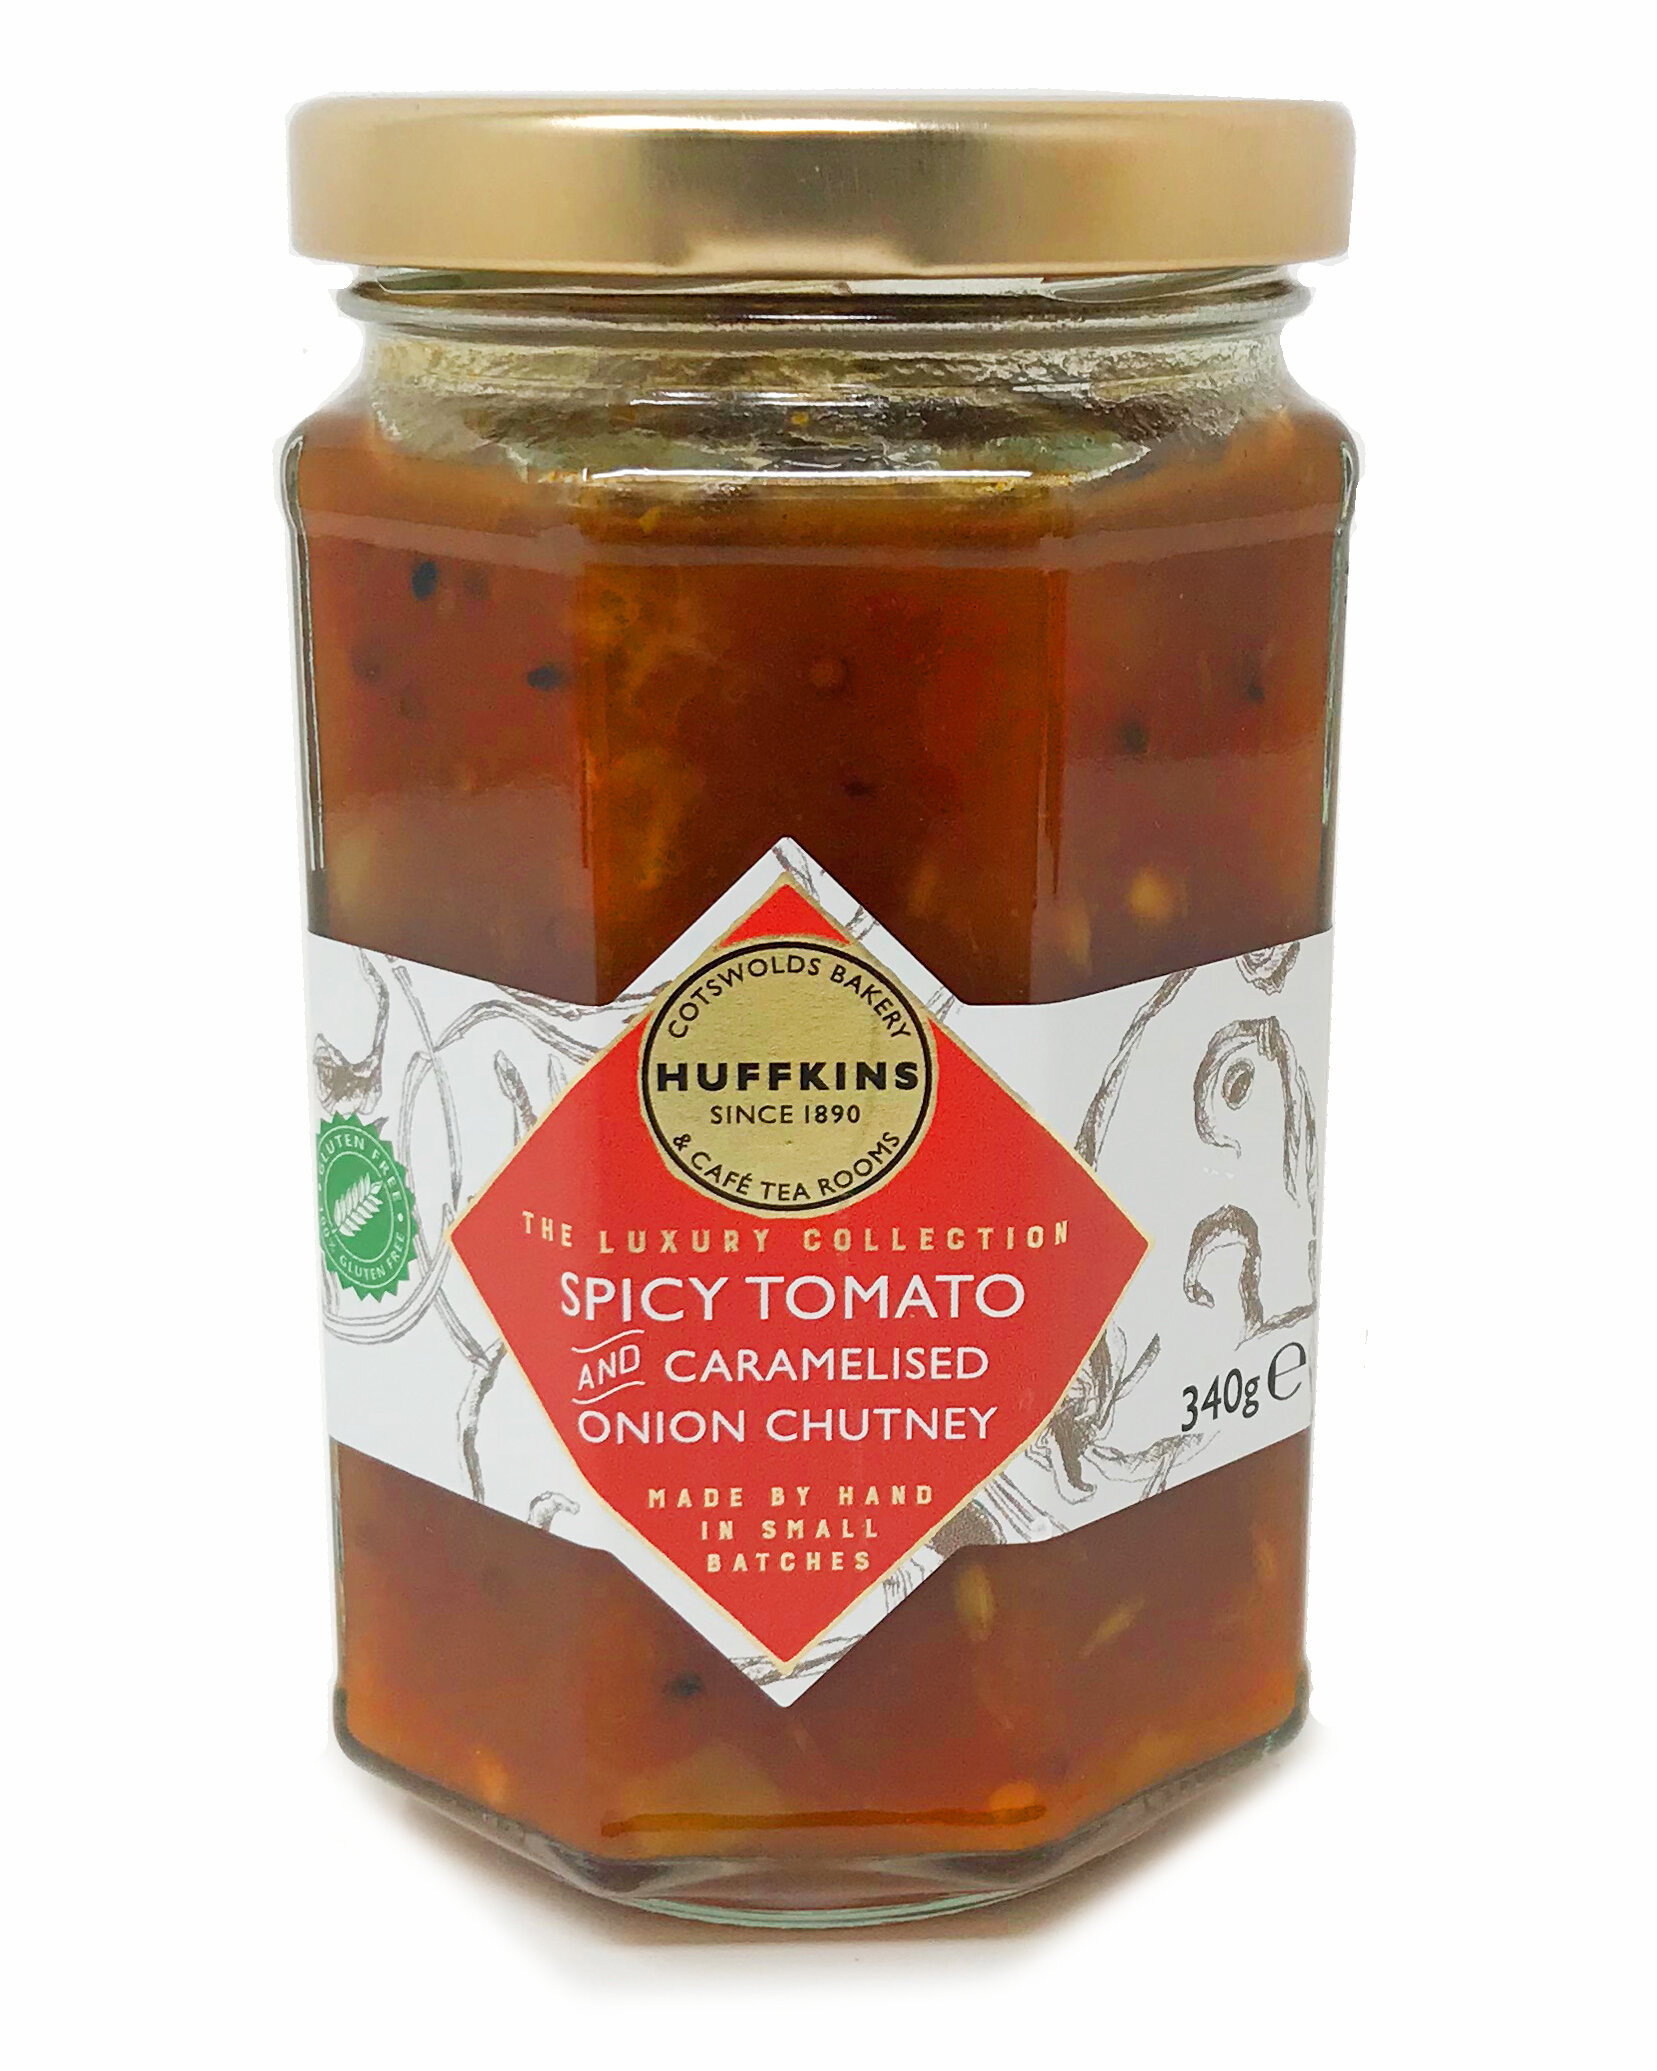 Most loved - Our spicy tomato & caramelised onion chutney.